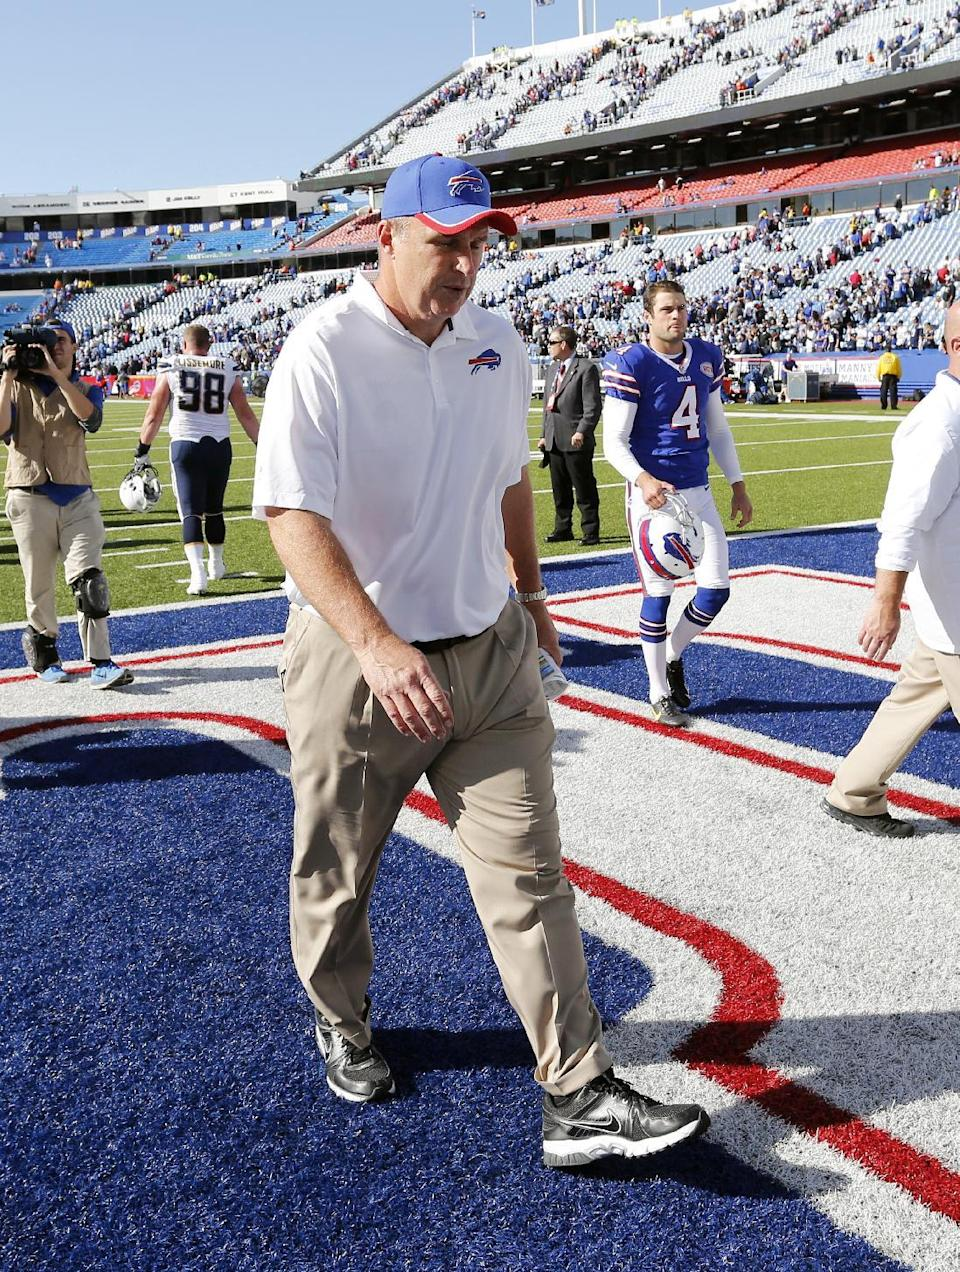 FILE - In this Sept. 21, 2014, file photo, Buffalo Bills head coach Doug Marrone walks off the field after an NFL football game against the San Diego Chargers in Orchard Park, N.Y. Marrone has stepped down as coach of the Bills. Bills owner Terry Pegula said Wednesday, Dec. 31 that Marrone exercised the opt-out clause in his contract. (AP Photo/Bill Wippert, File)